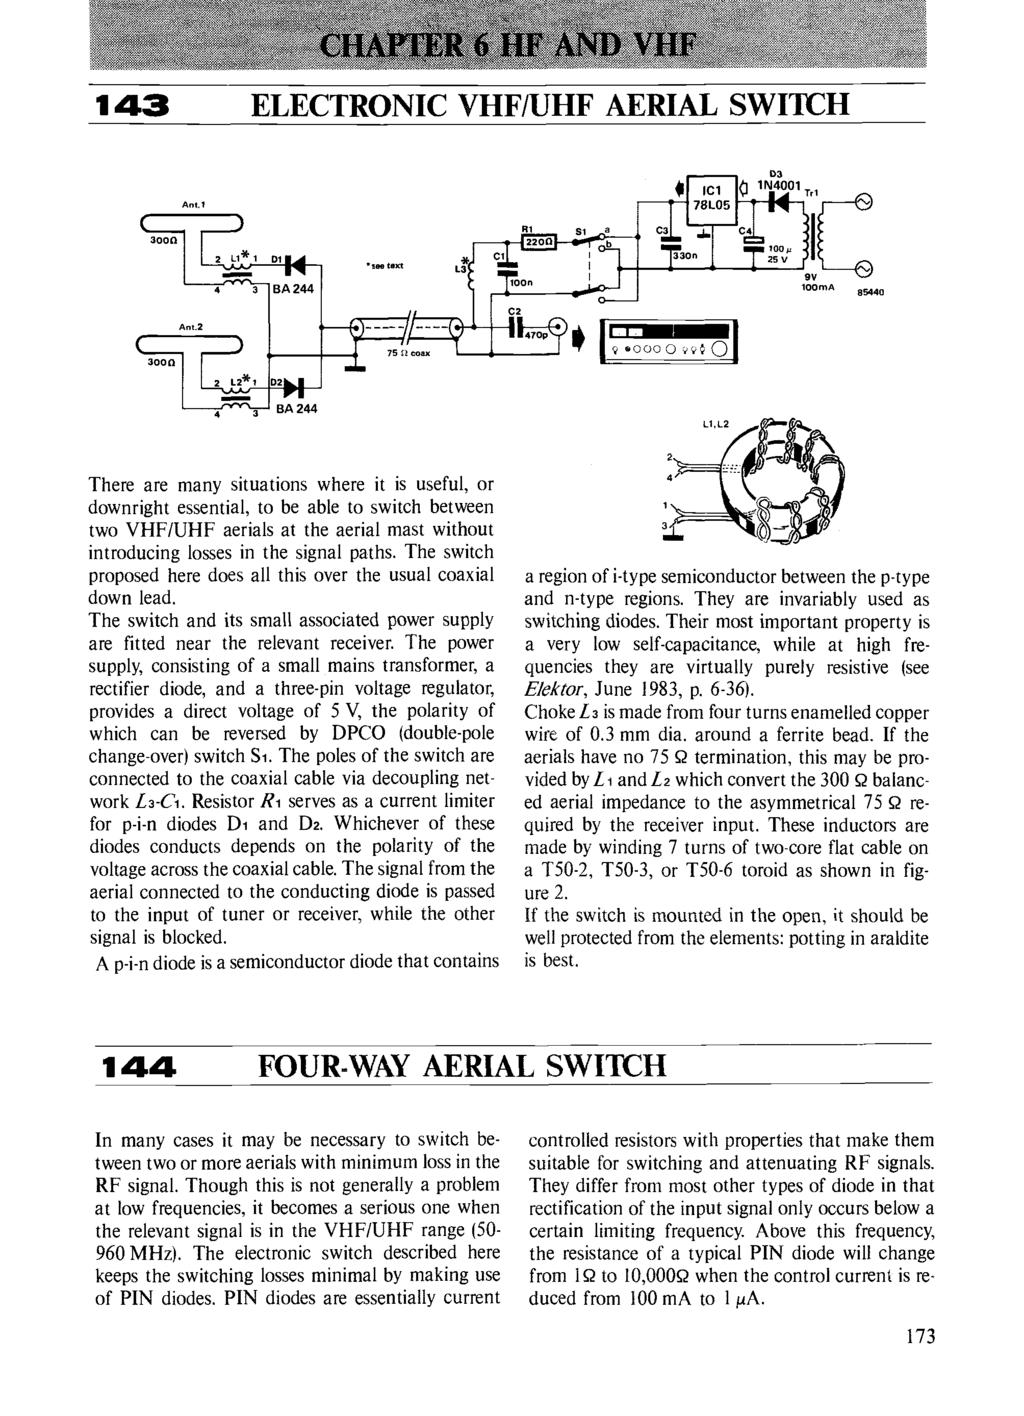 Circuits Elektor Electronics Pdf Circuit The Relay Switch 4 7k 9v As Aug Ldr A To Light 143 Electronic Vhf Uhf Aerial Ant 1 1ma 8544 11717immmi